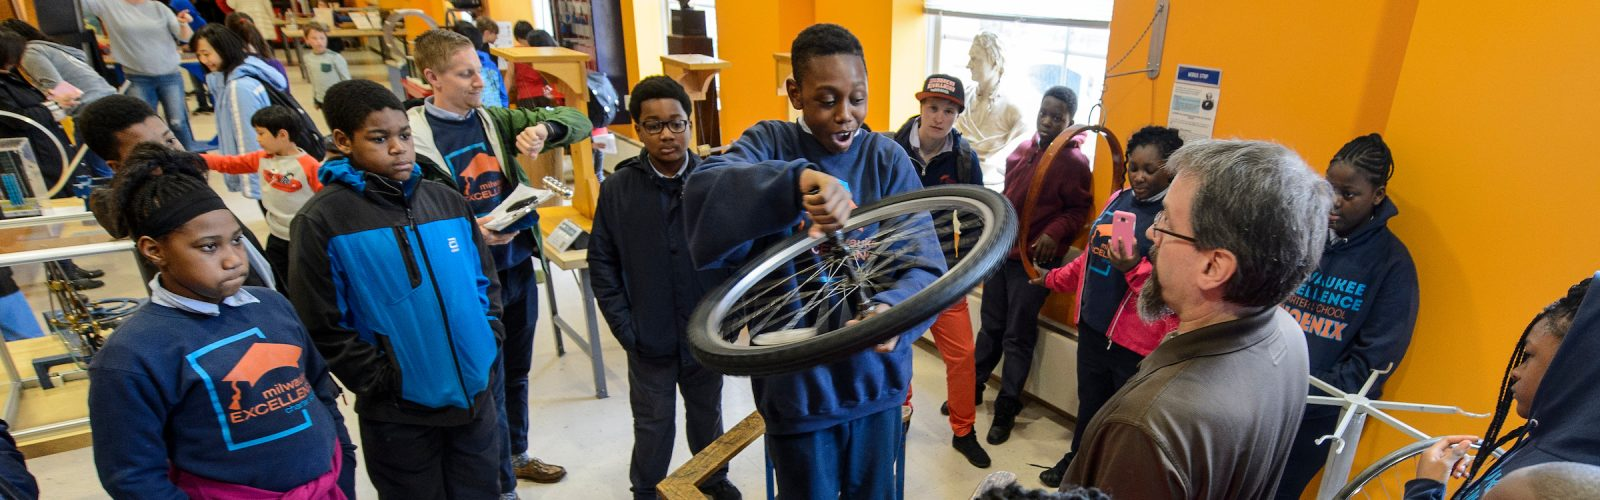 several young students watch in the physics museum as one student holds a spinning bike wheel while standing on a rotatable platform